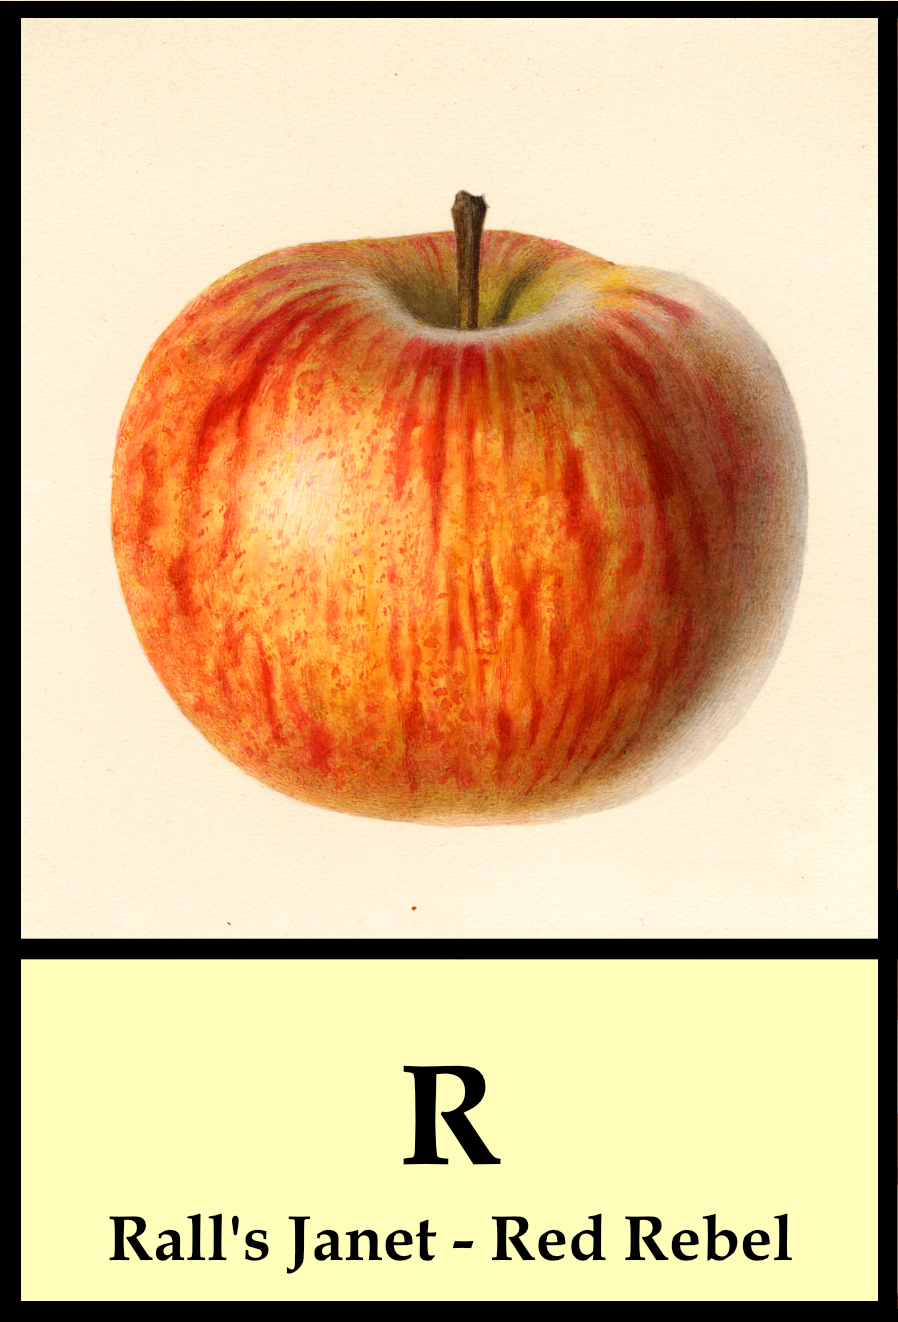 R apples - Rall's Janet to Red Rebel